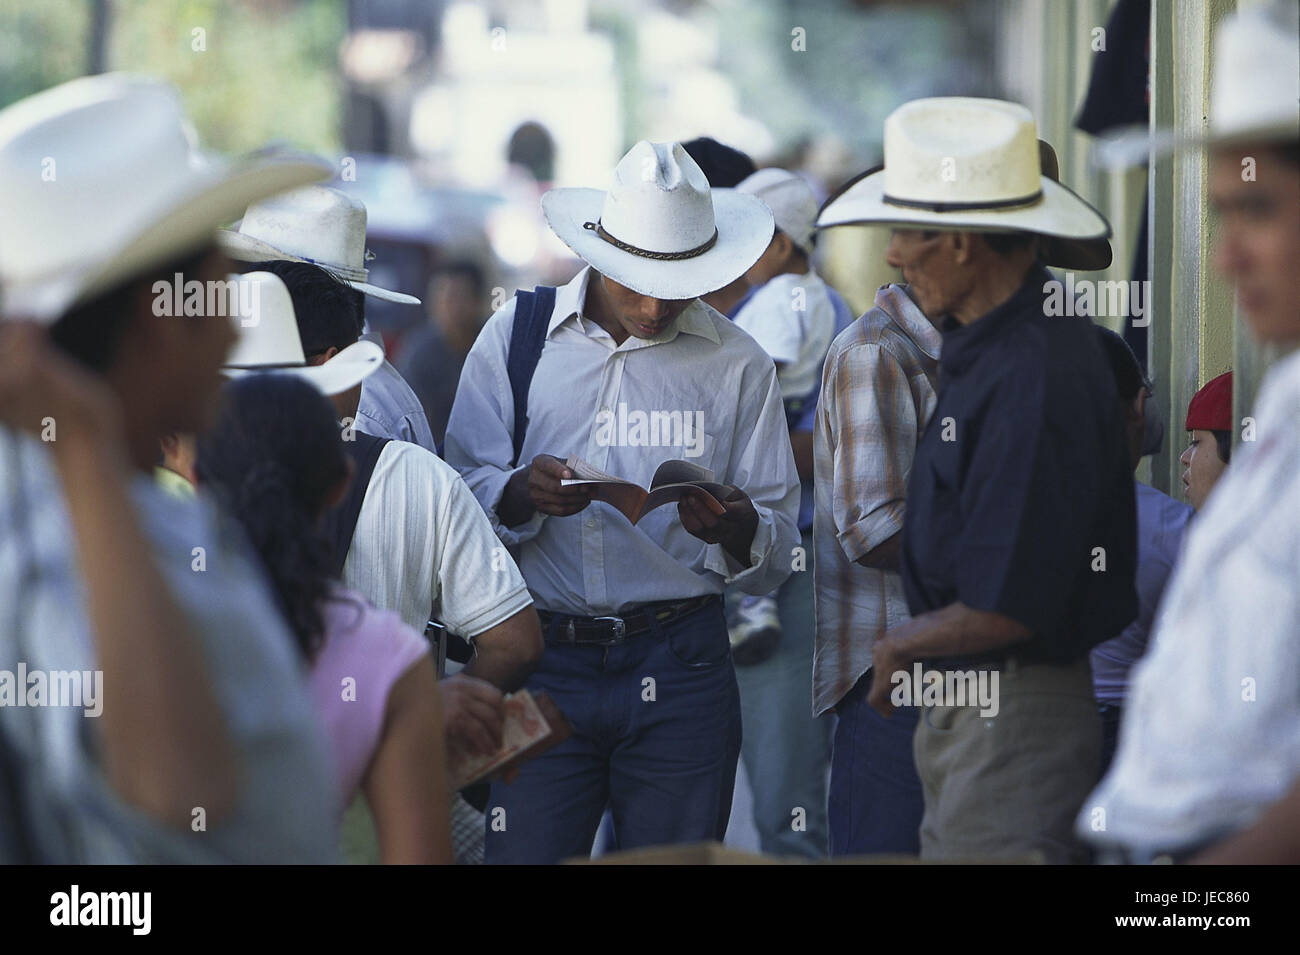 Honduras, Copan, market, cowboys, stand, blur, no model release, Central America, Latin America, destination, place, - Stock Image